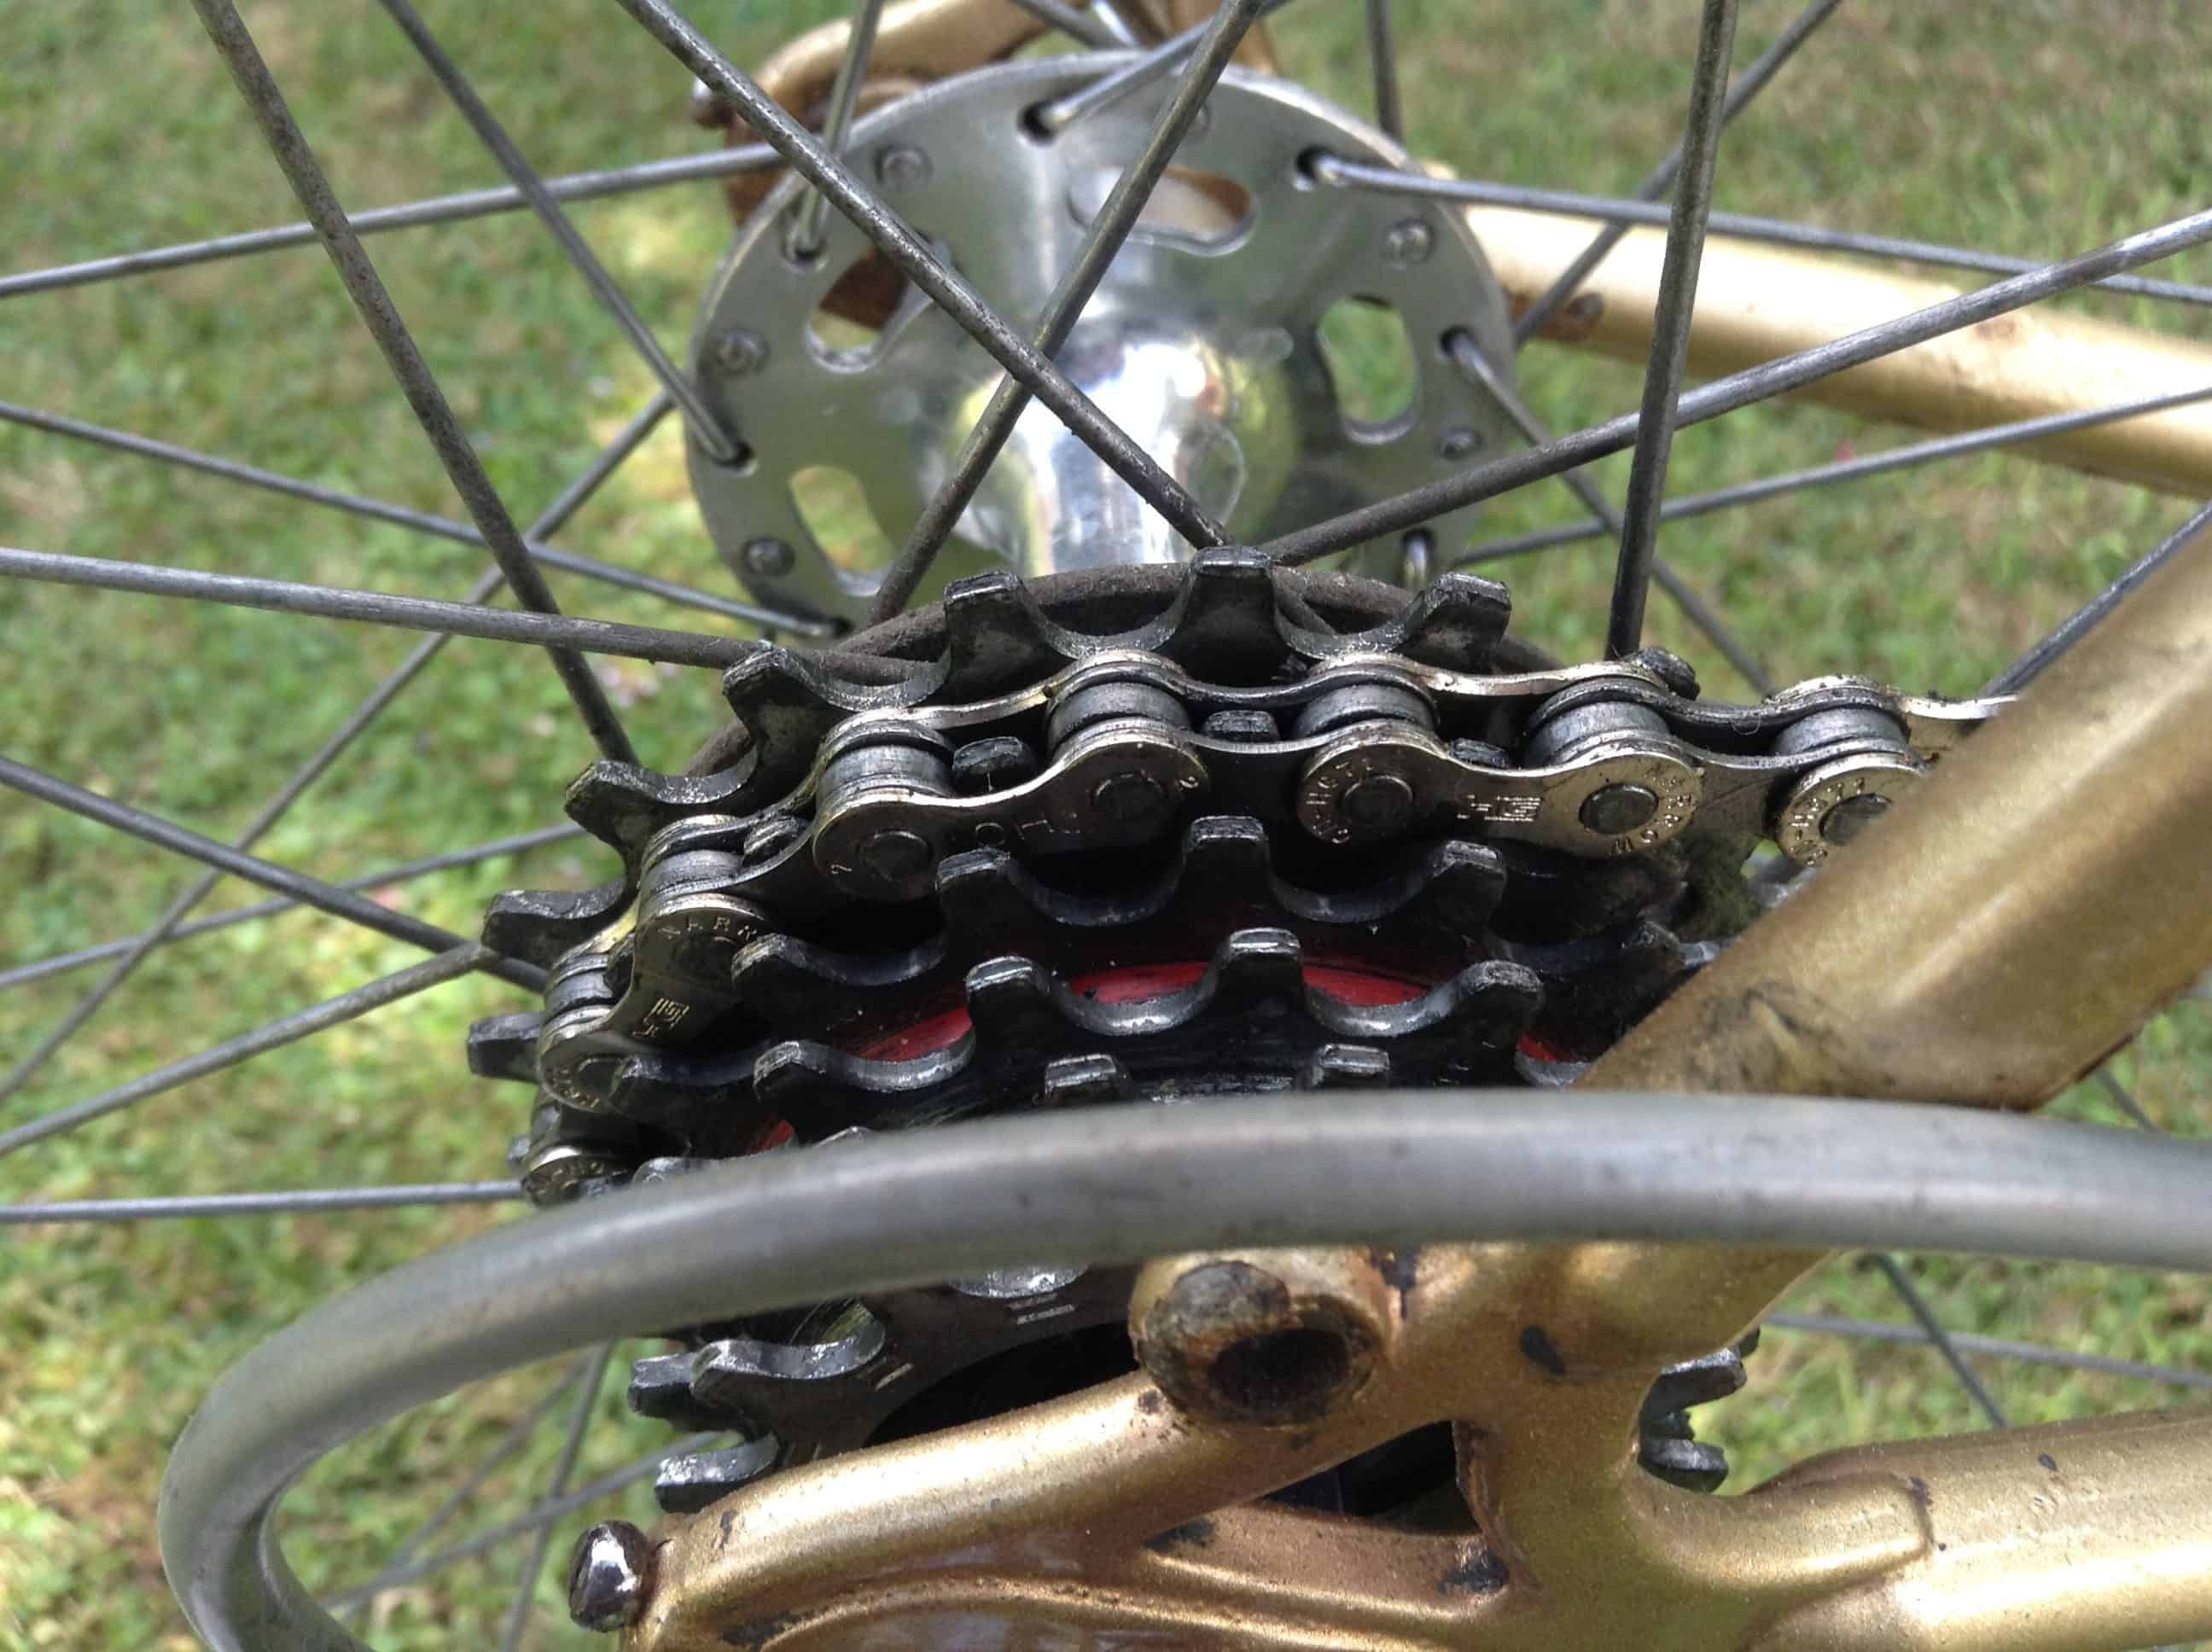 Shifter Problems with my Vintage Peugeot bike, gear change